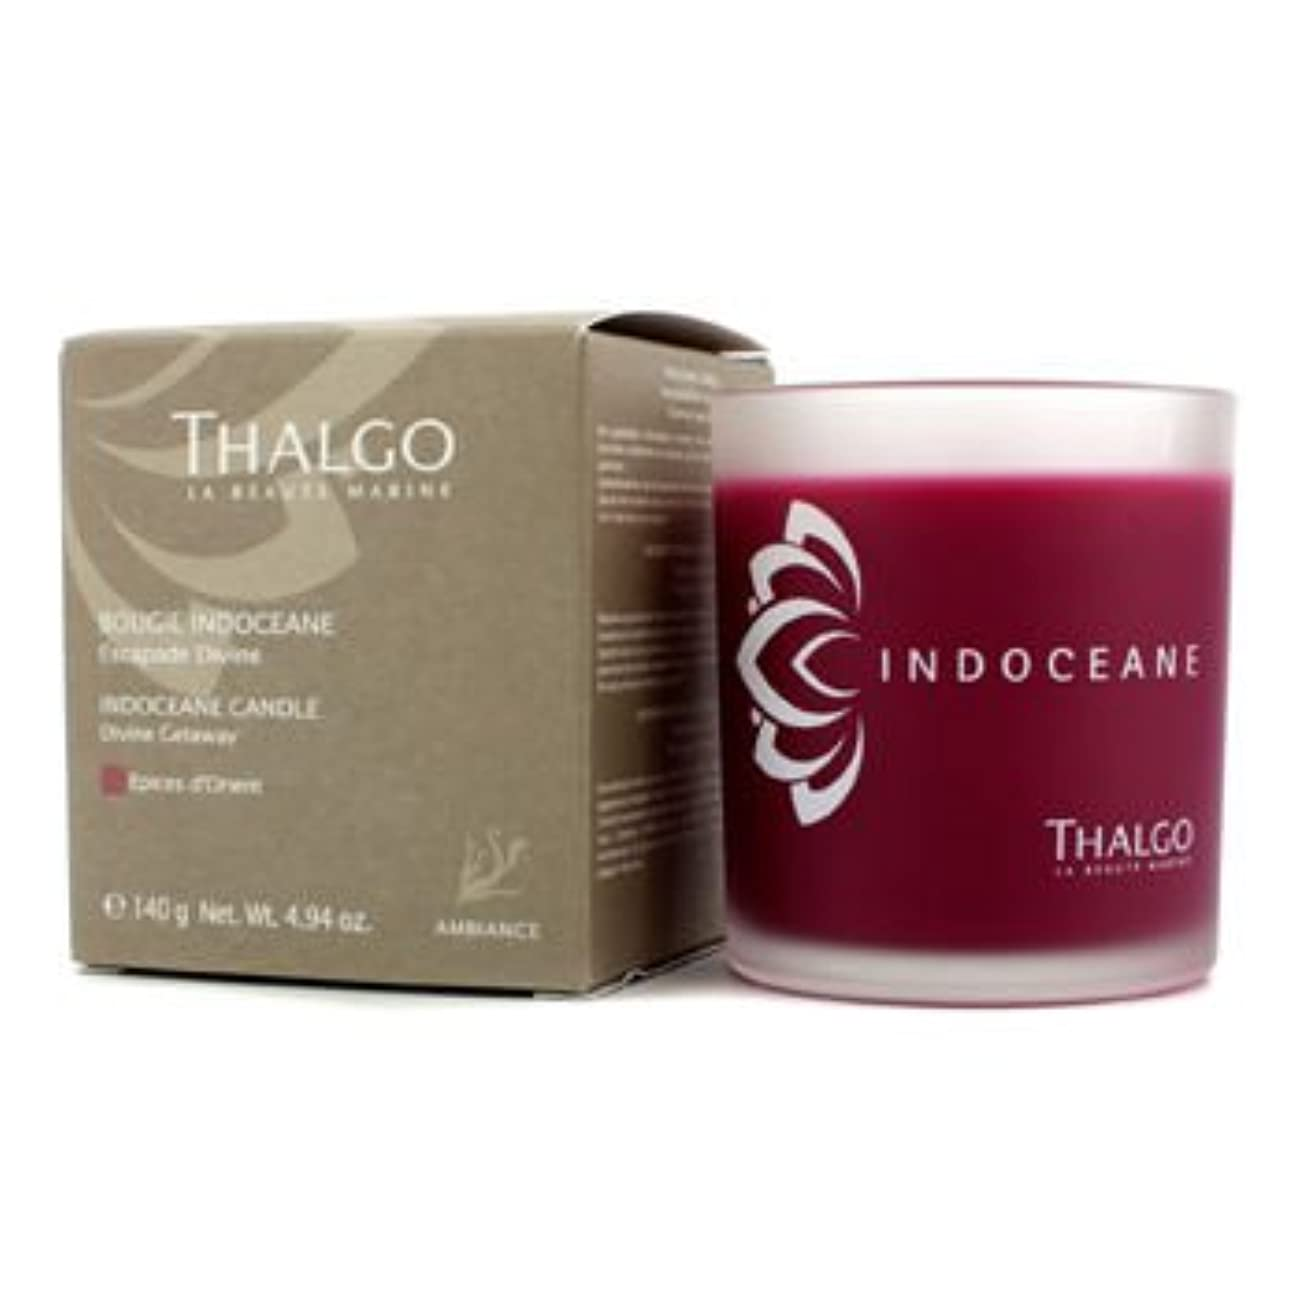 見物人タック滅多[Thalgo] Indoceane Candle 140g/4.94oz